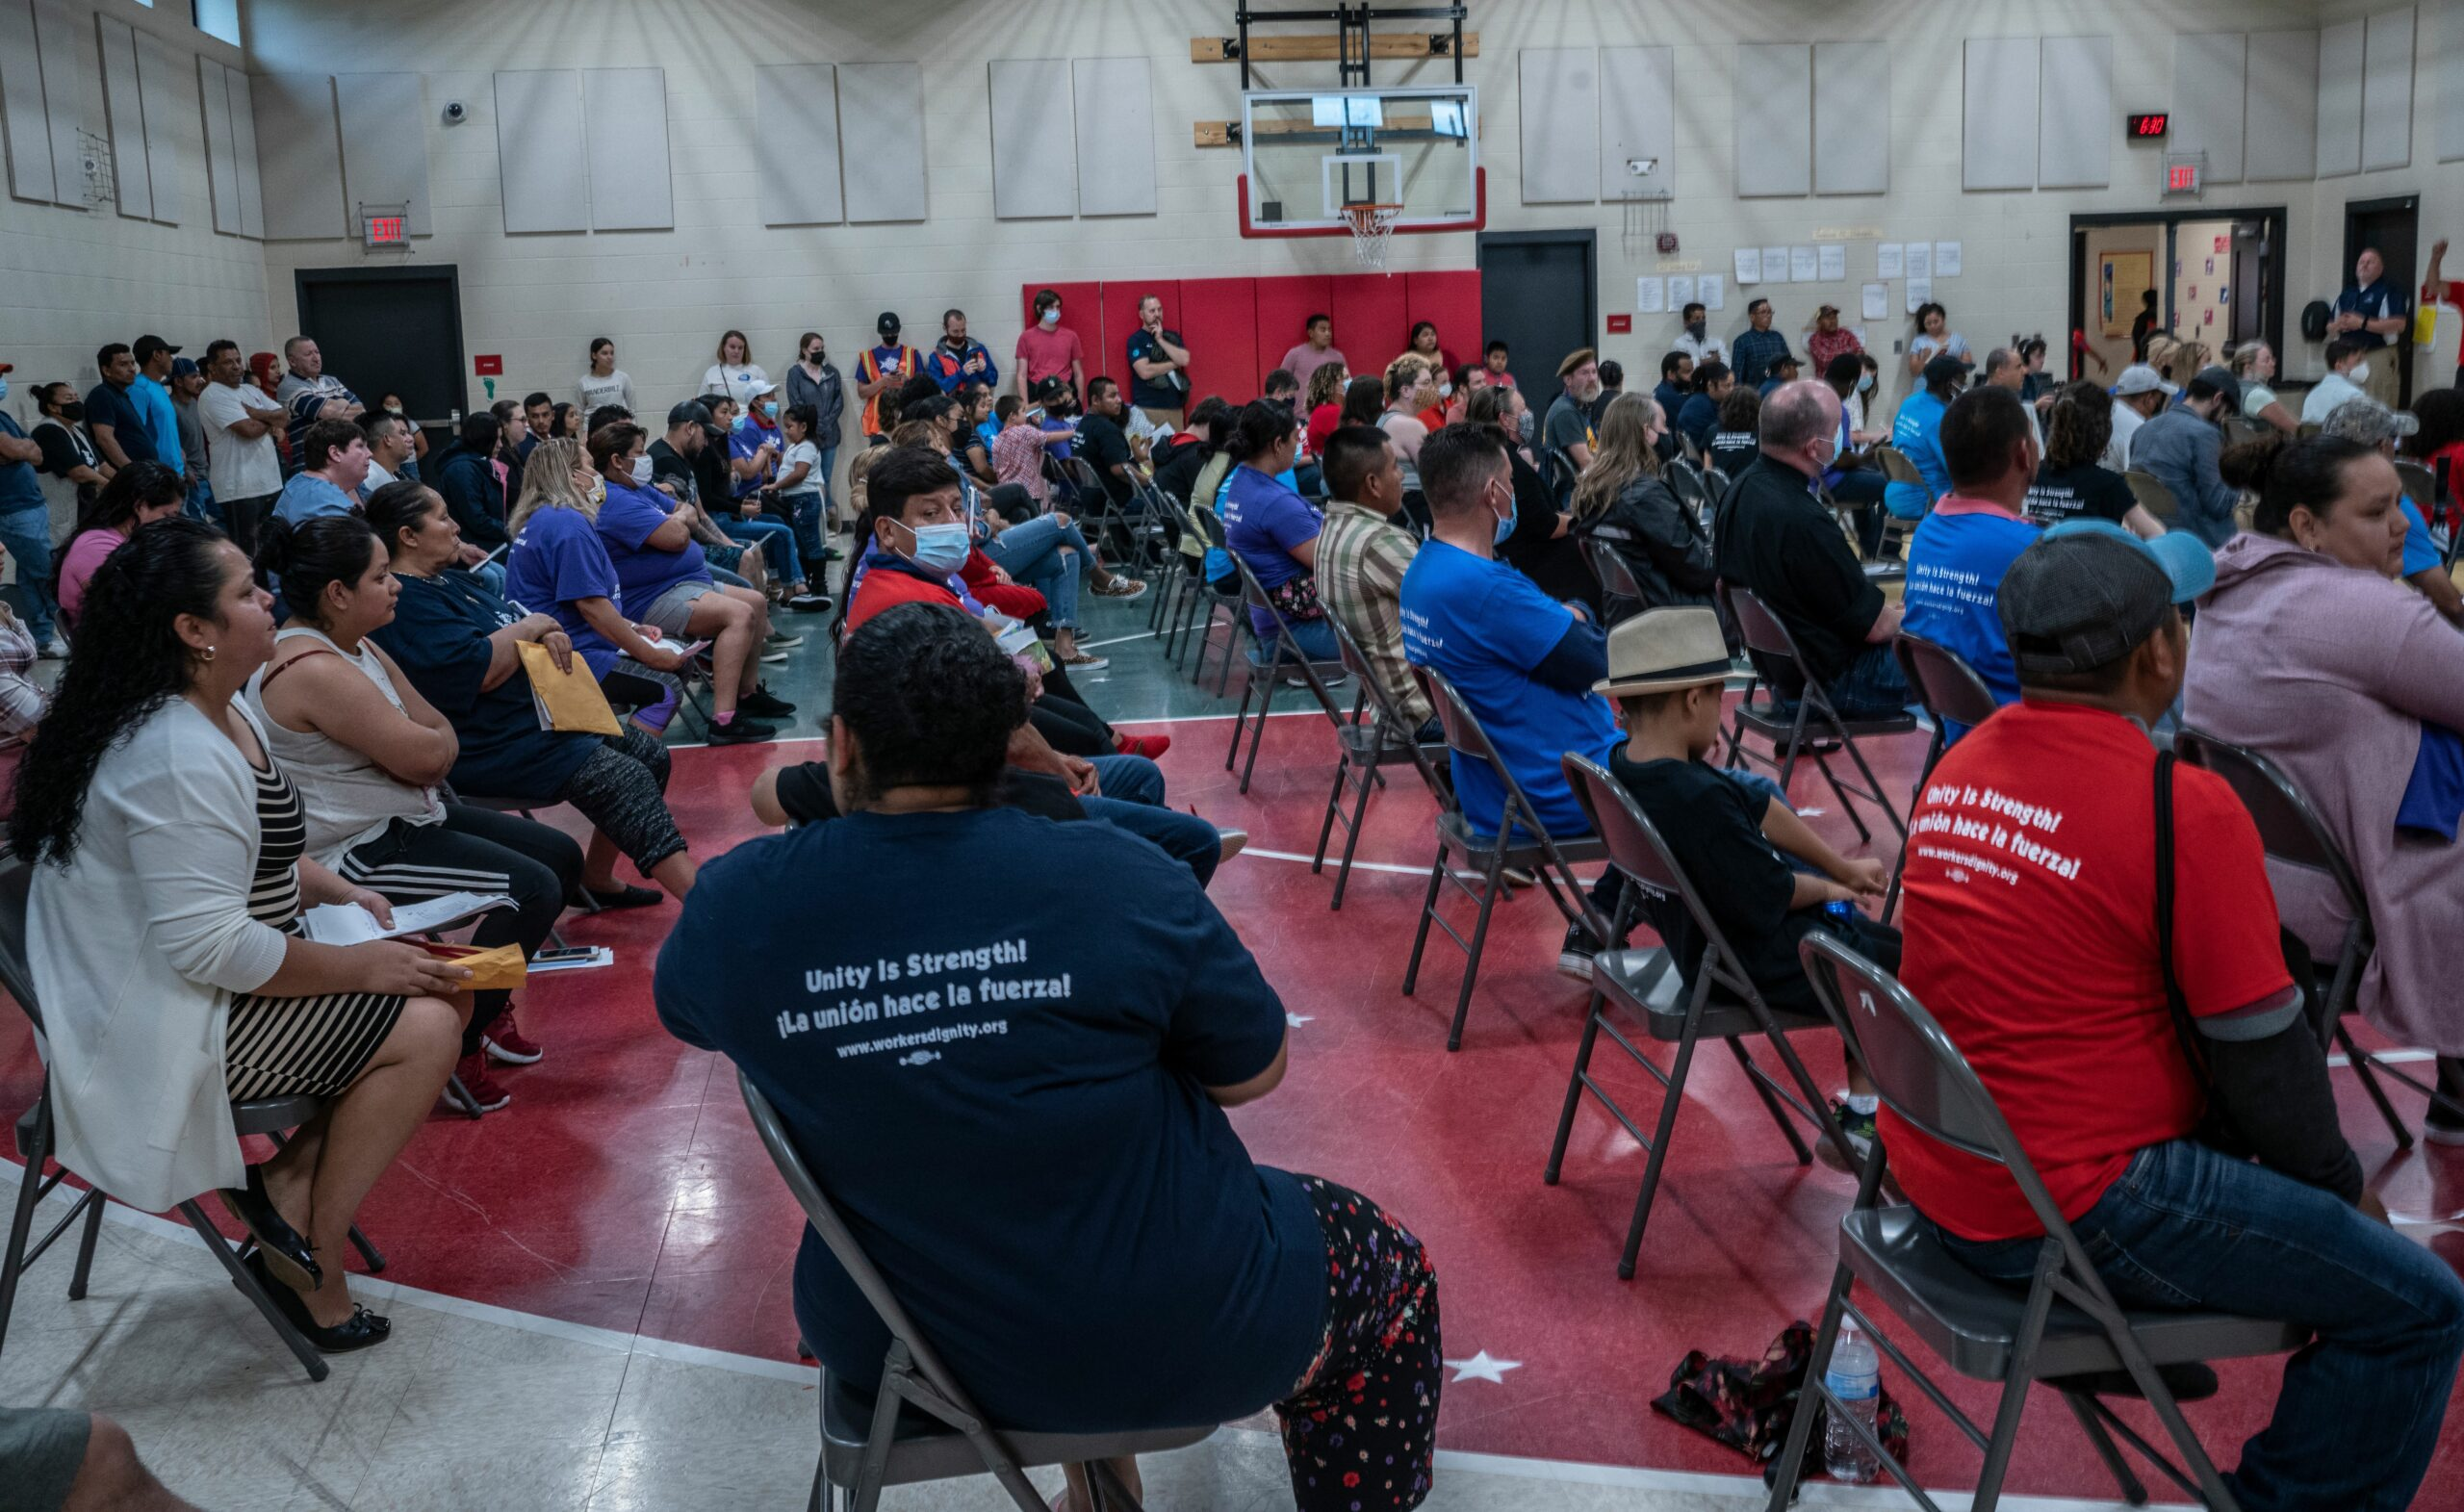 Hundreds of people from the Mosaic apartments showed up to question management about evictions notices on Wednesday. (Photo: John Partipilo)